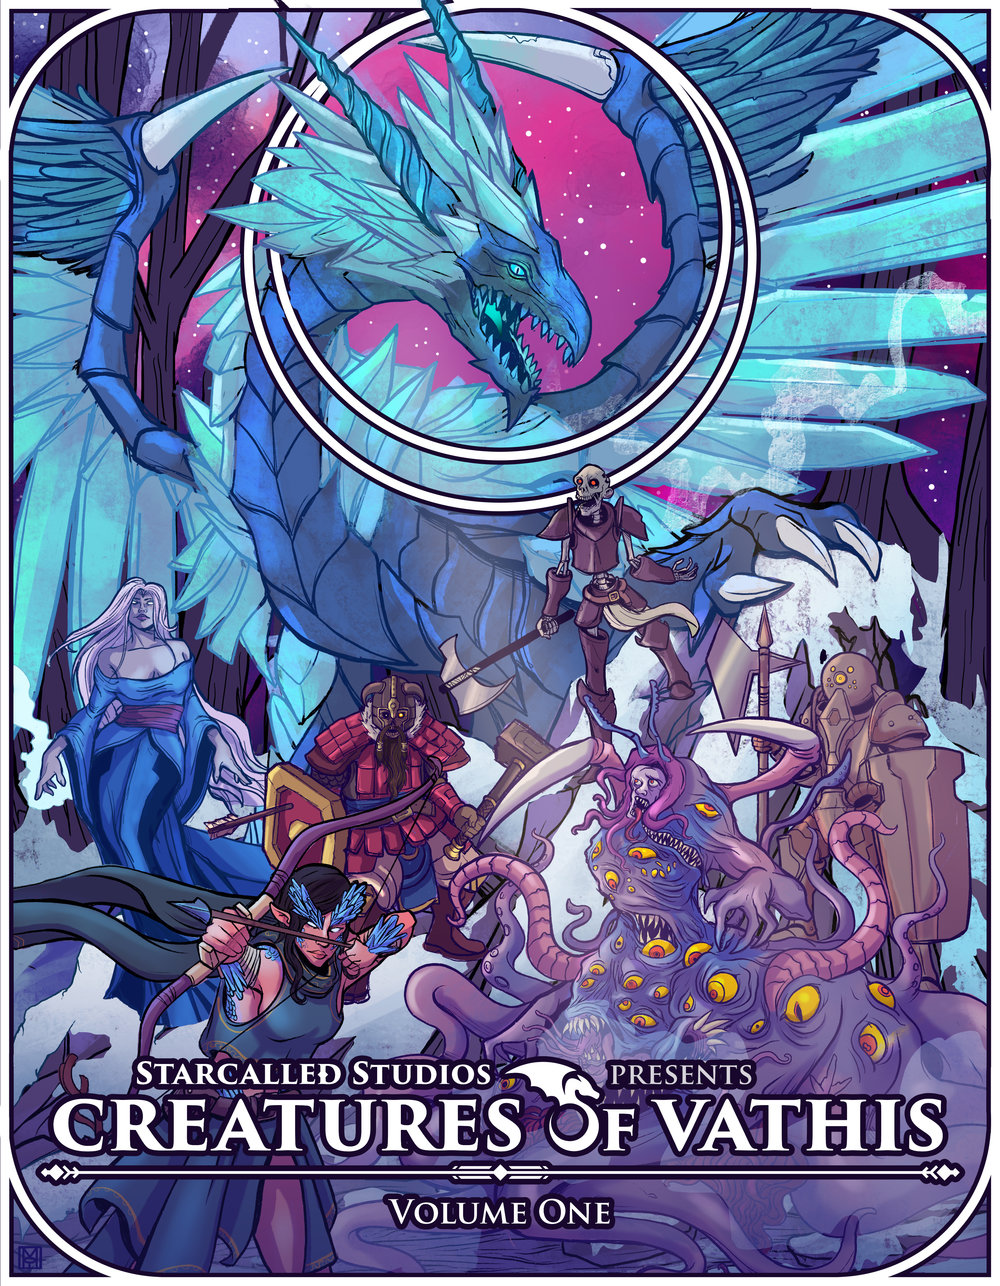 Creatures of Vathis